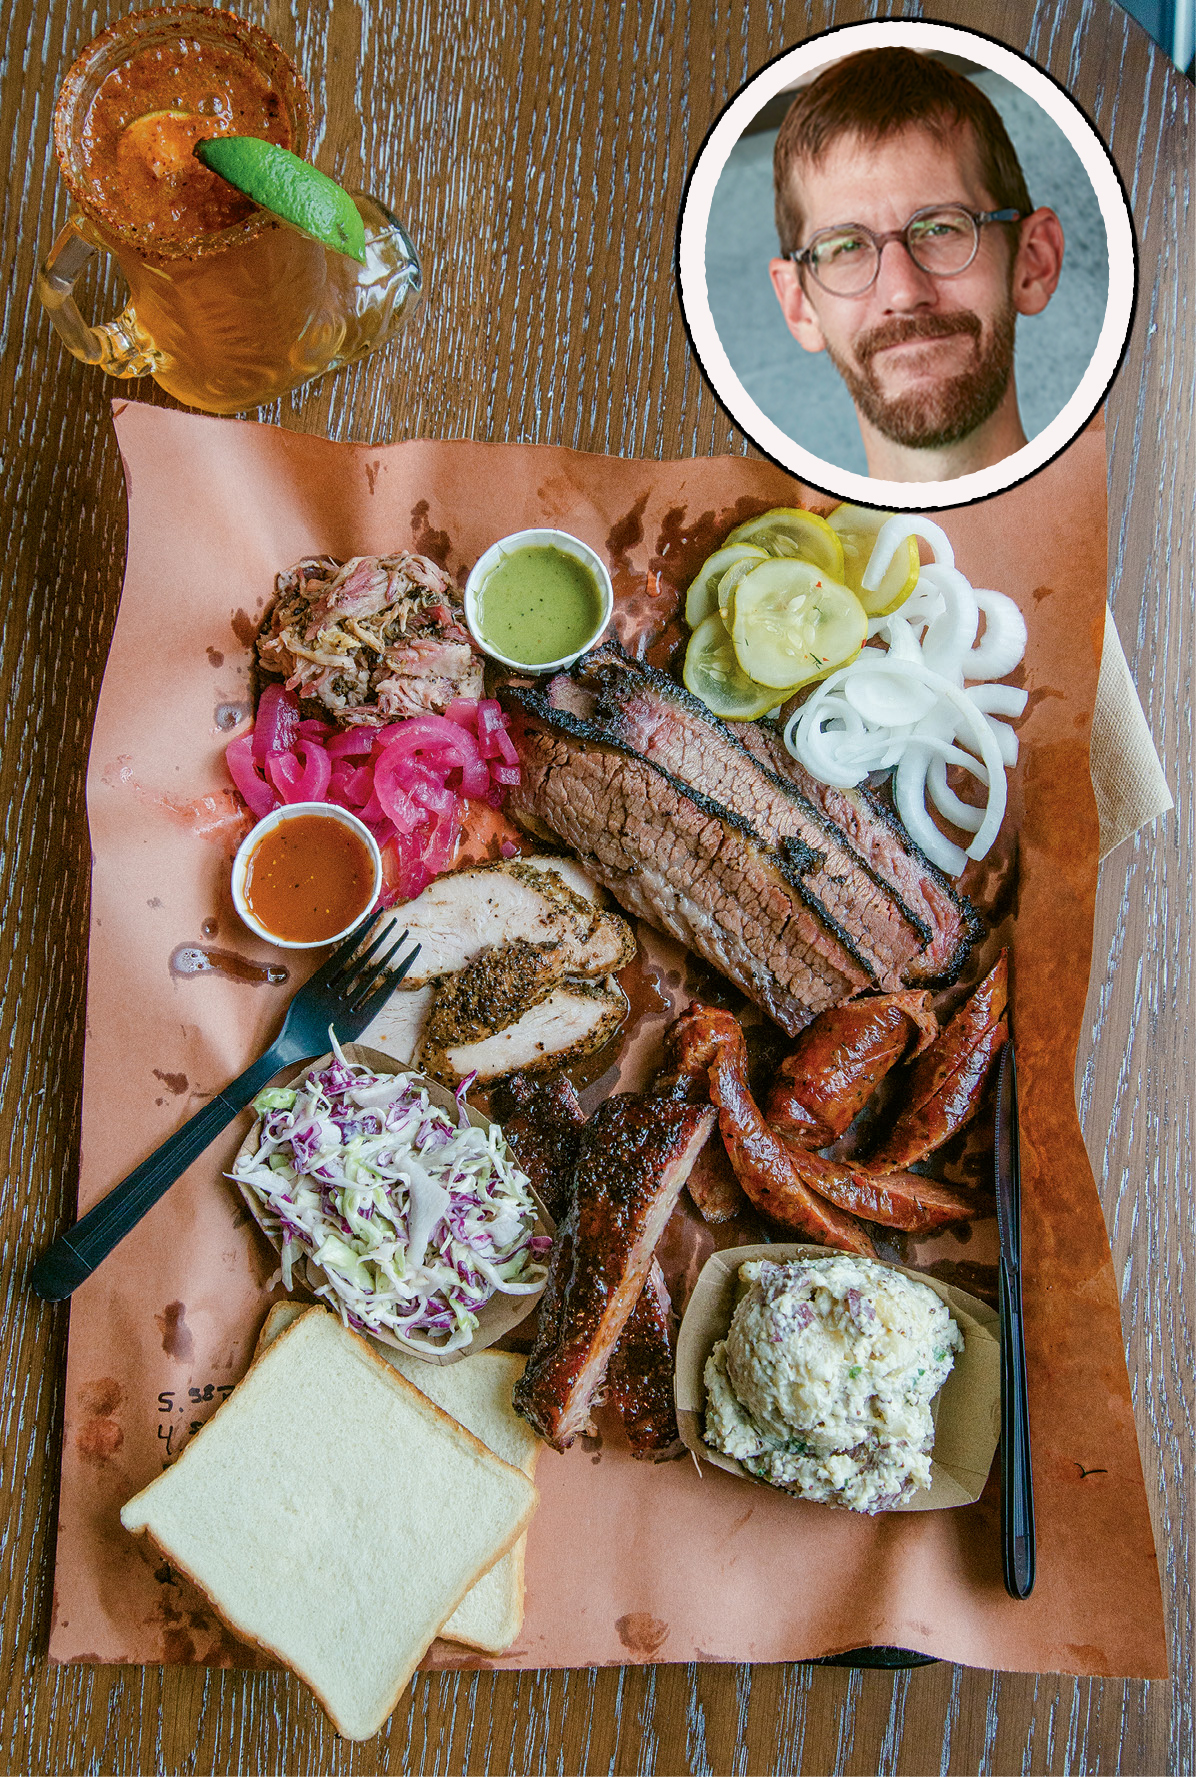 Beef brisket, Texas hot guts, ribs, smoked turkey, and more from Lewis Barbecue; (inset) pitmaster John Lewis